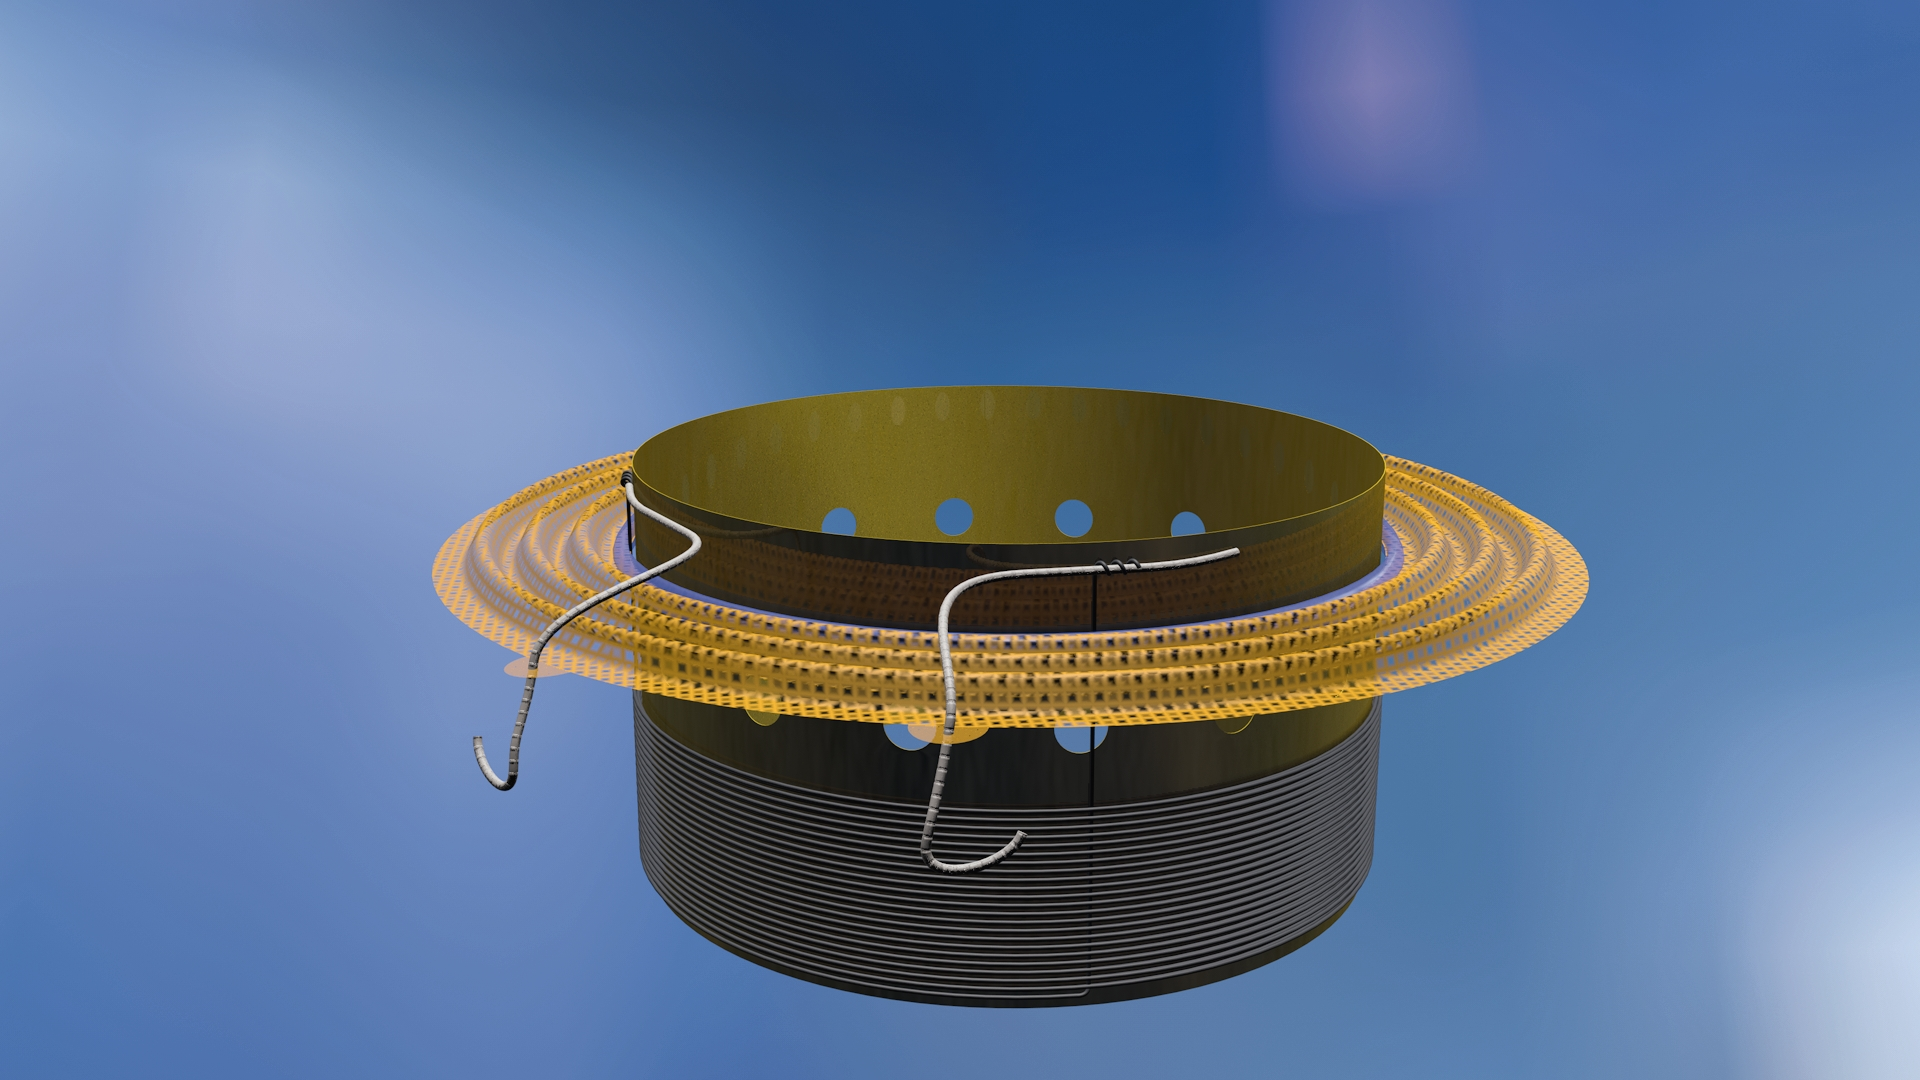 Light-curing allows making short work of spider-to-voice coil bonding